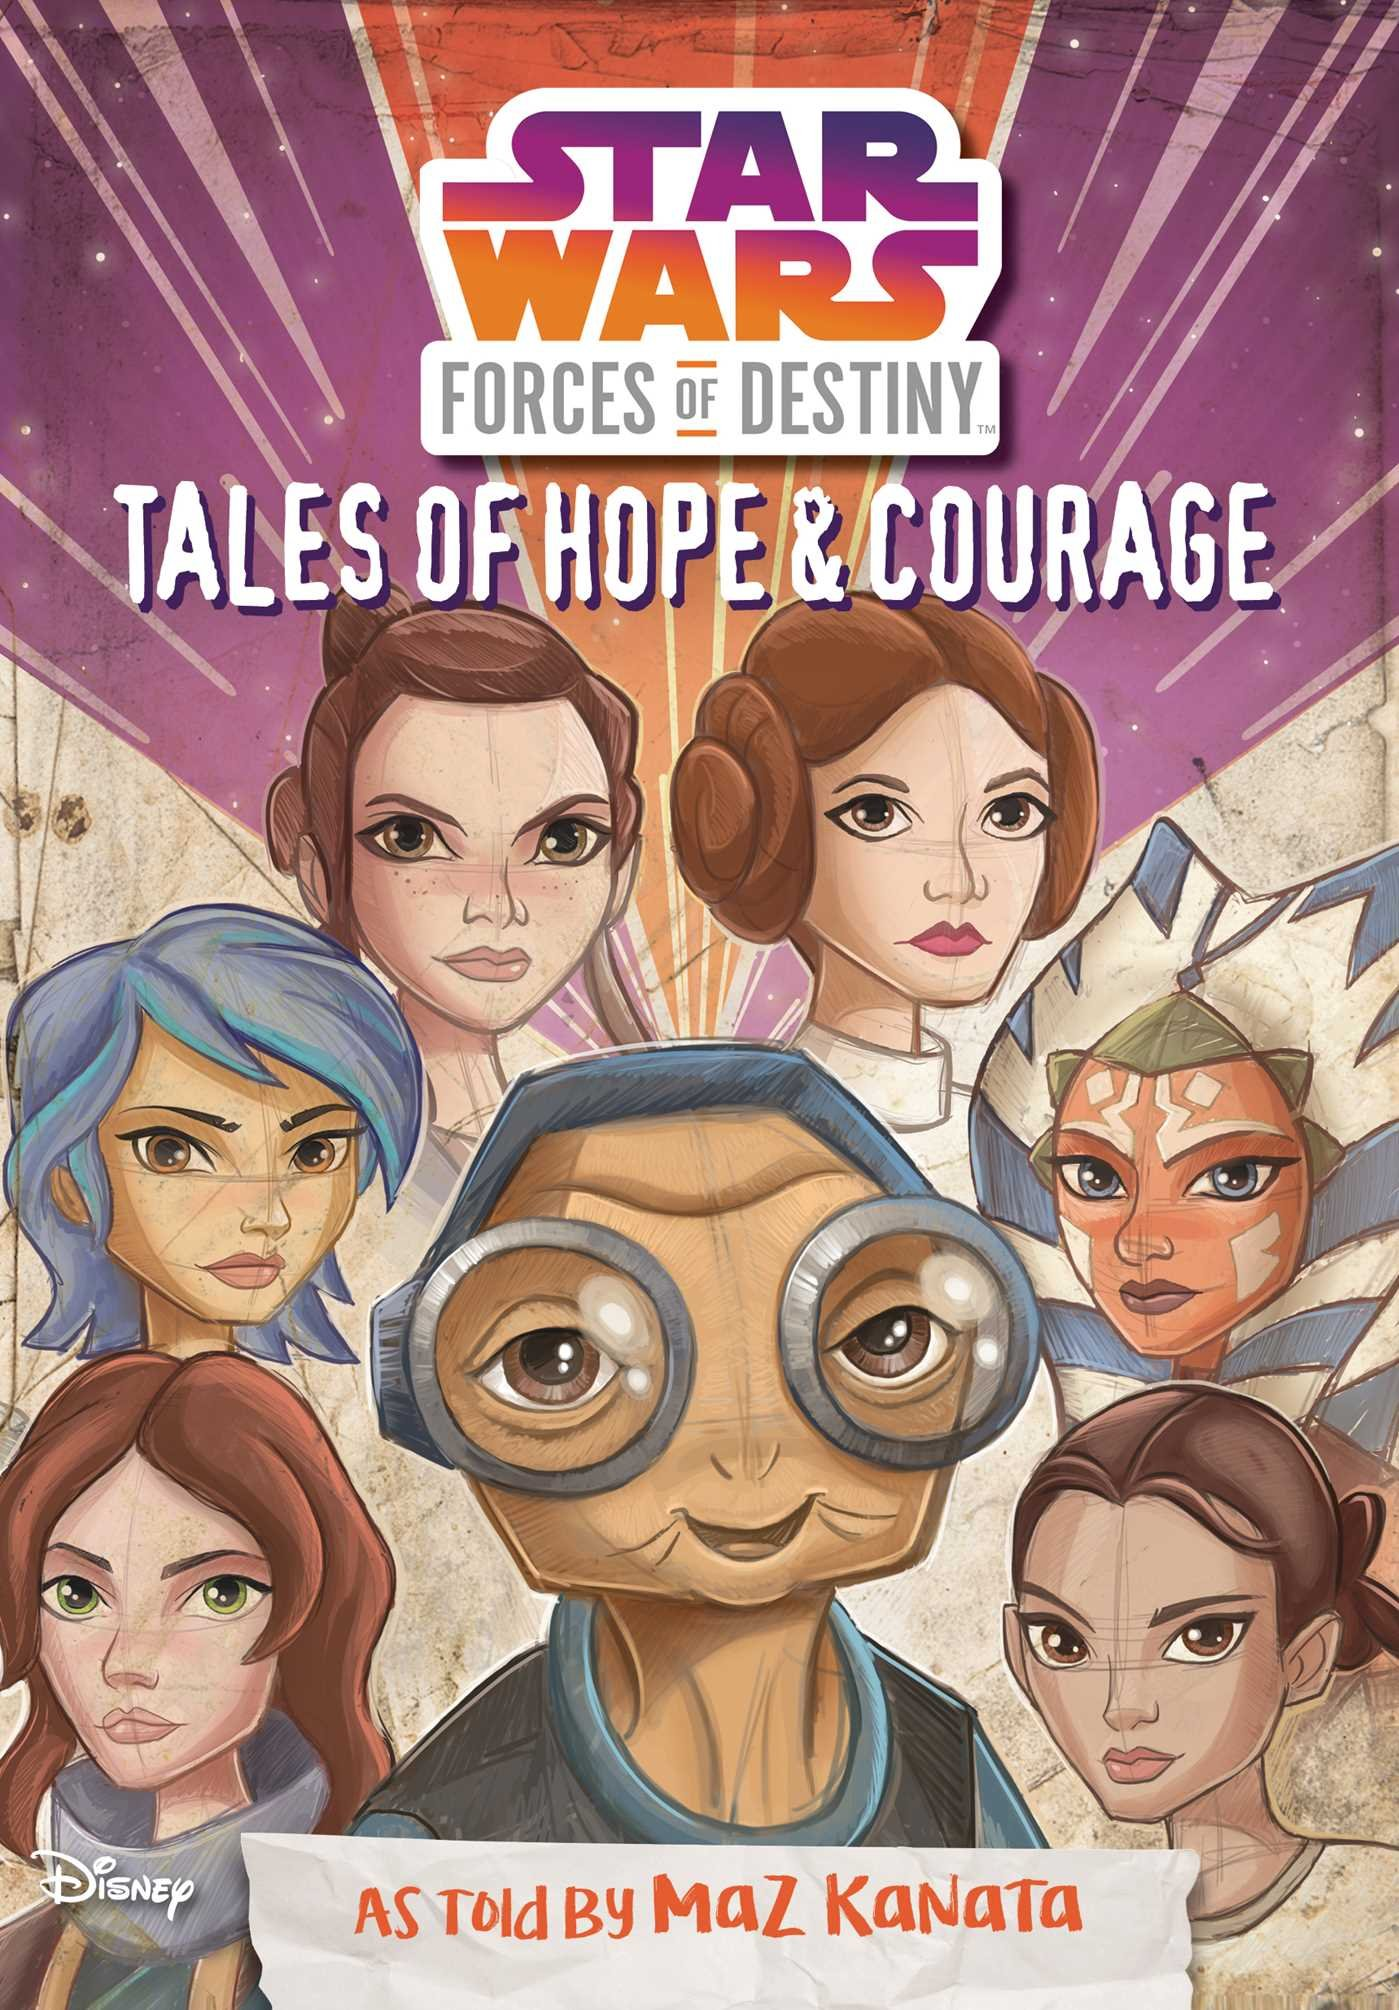 Star Wars Forces of Destiny Tales of Hope and Courage